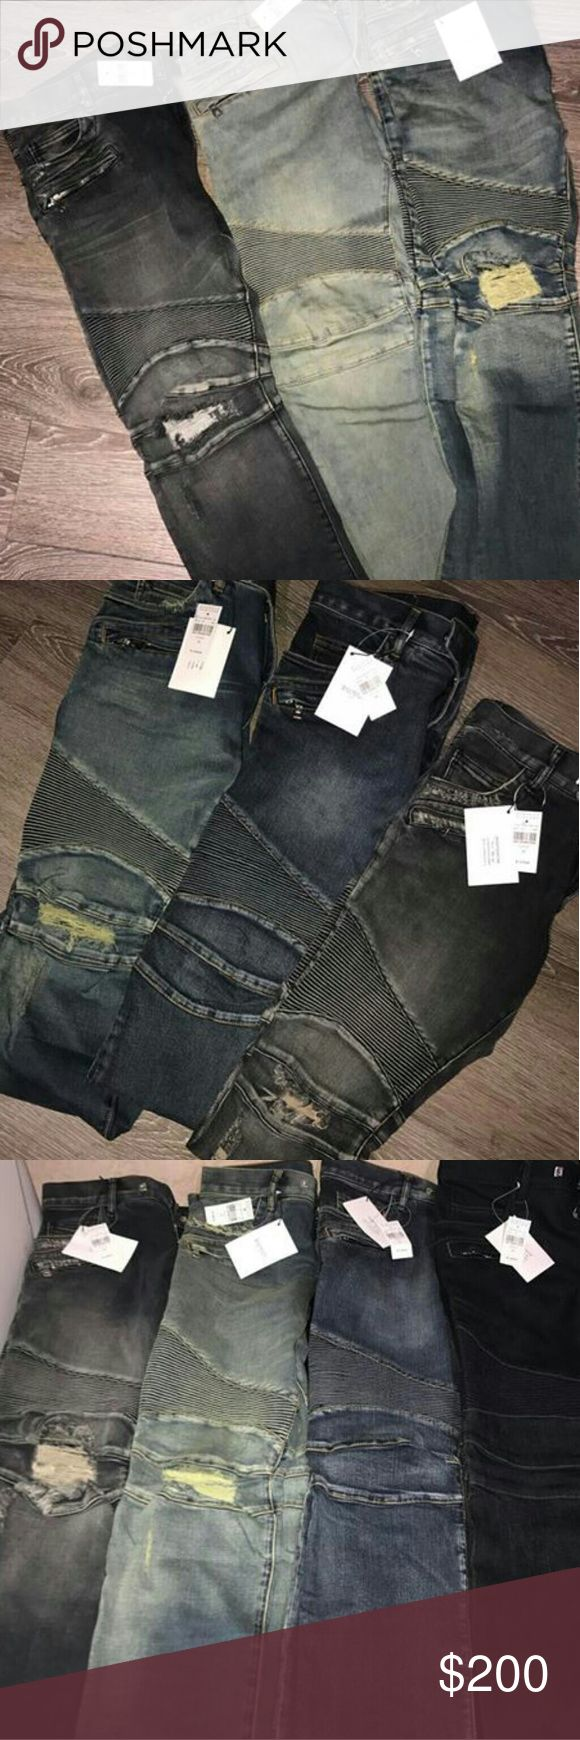 Balmain Jeans Balmain Jeans SERIOUS BUYERS ONLY 100% Authentic Brand New Never Worn PayPal payments only Text (586) 834-7967 if interested Balmain Pants